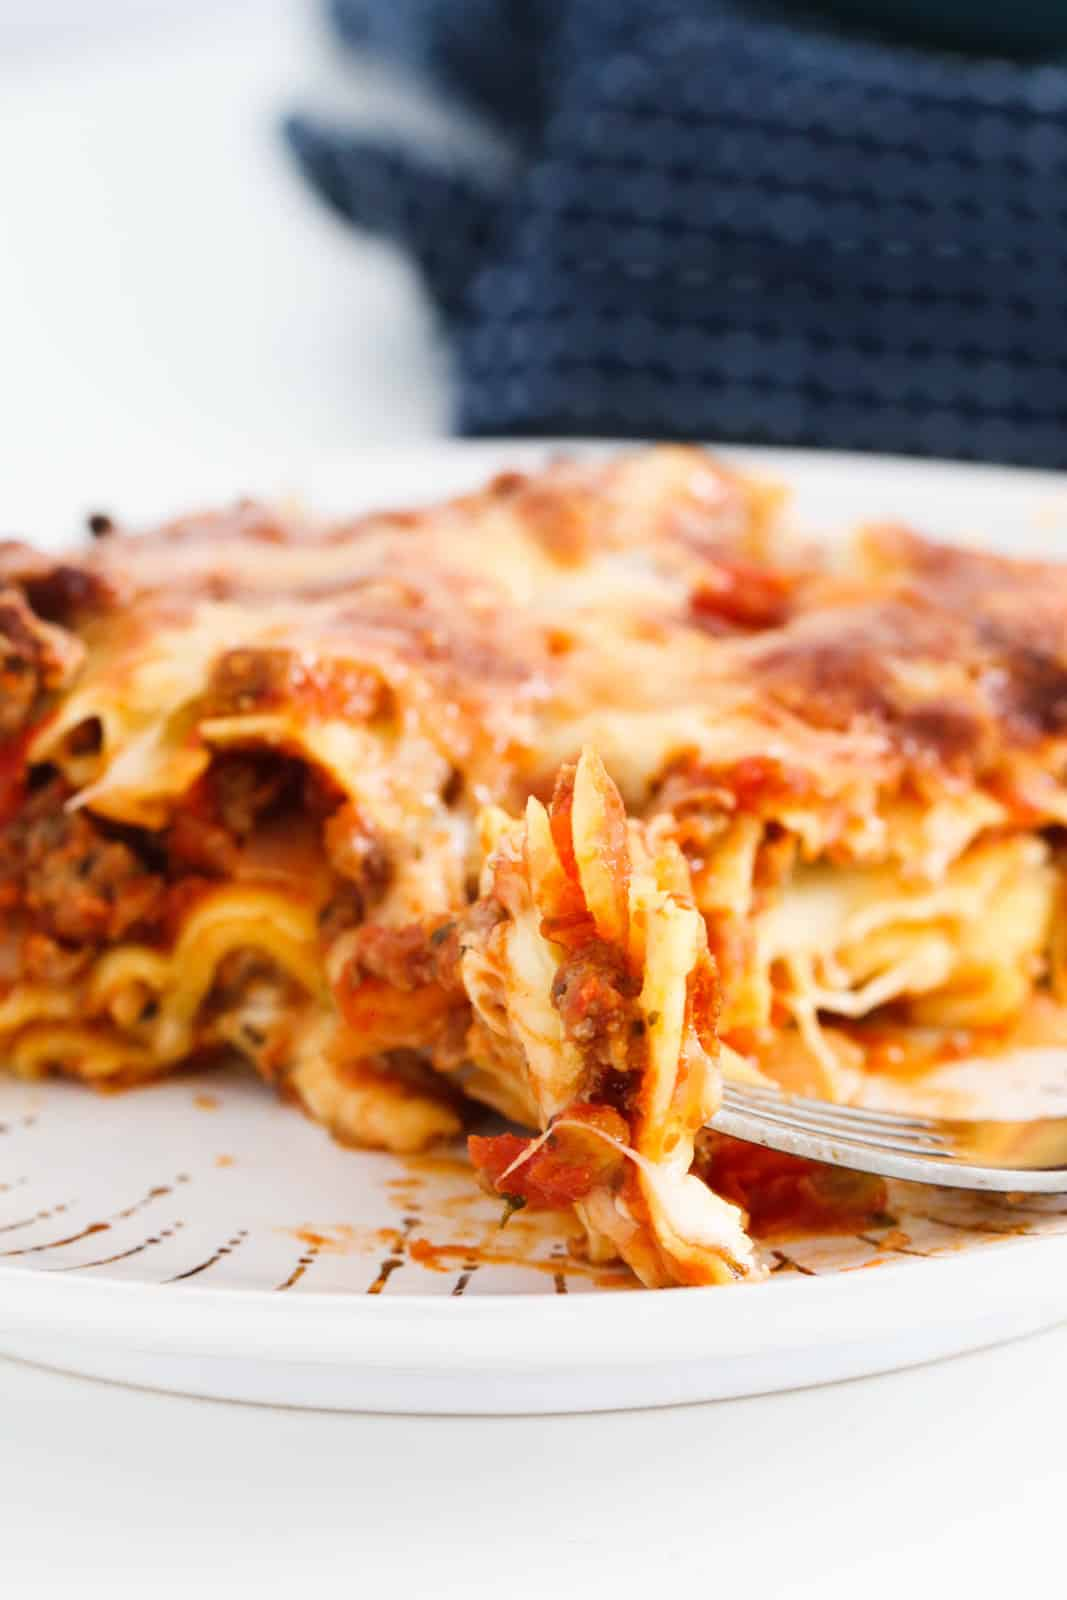 A closeup of a serving of lasagne with a piece on a fork in the foreground